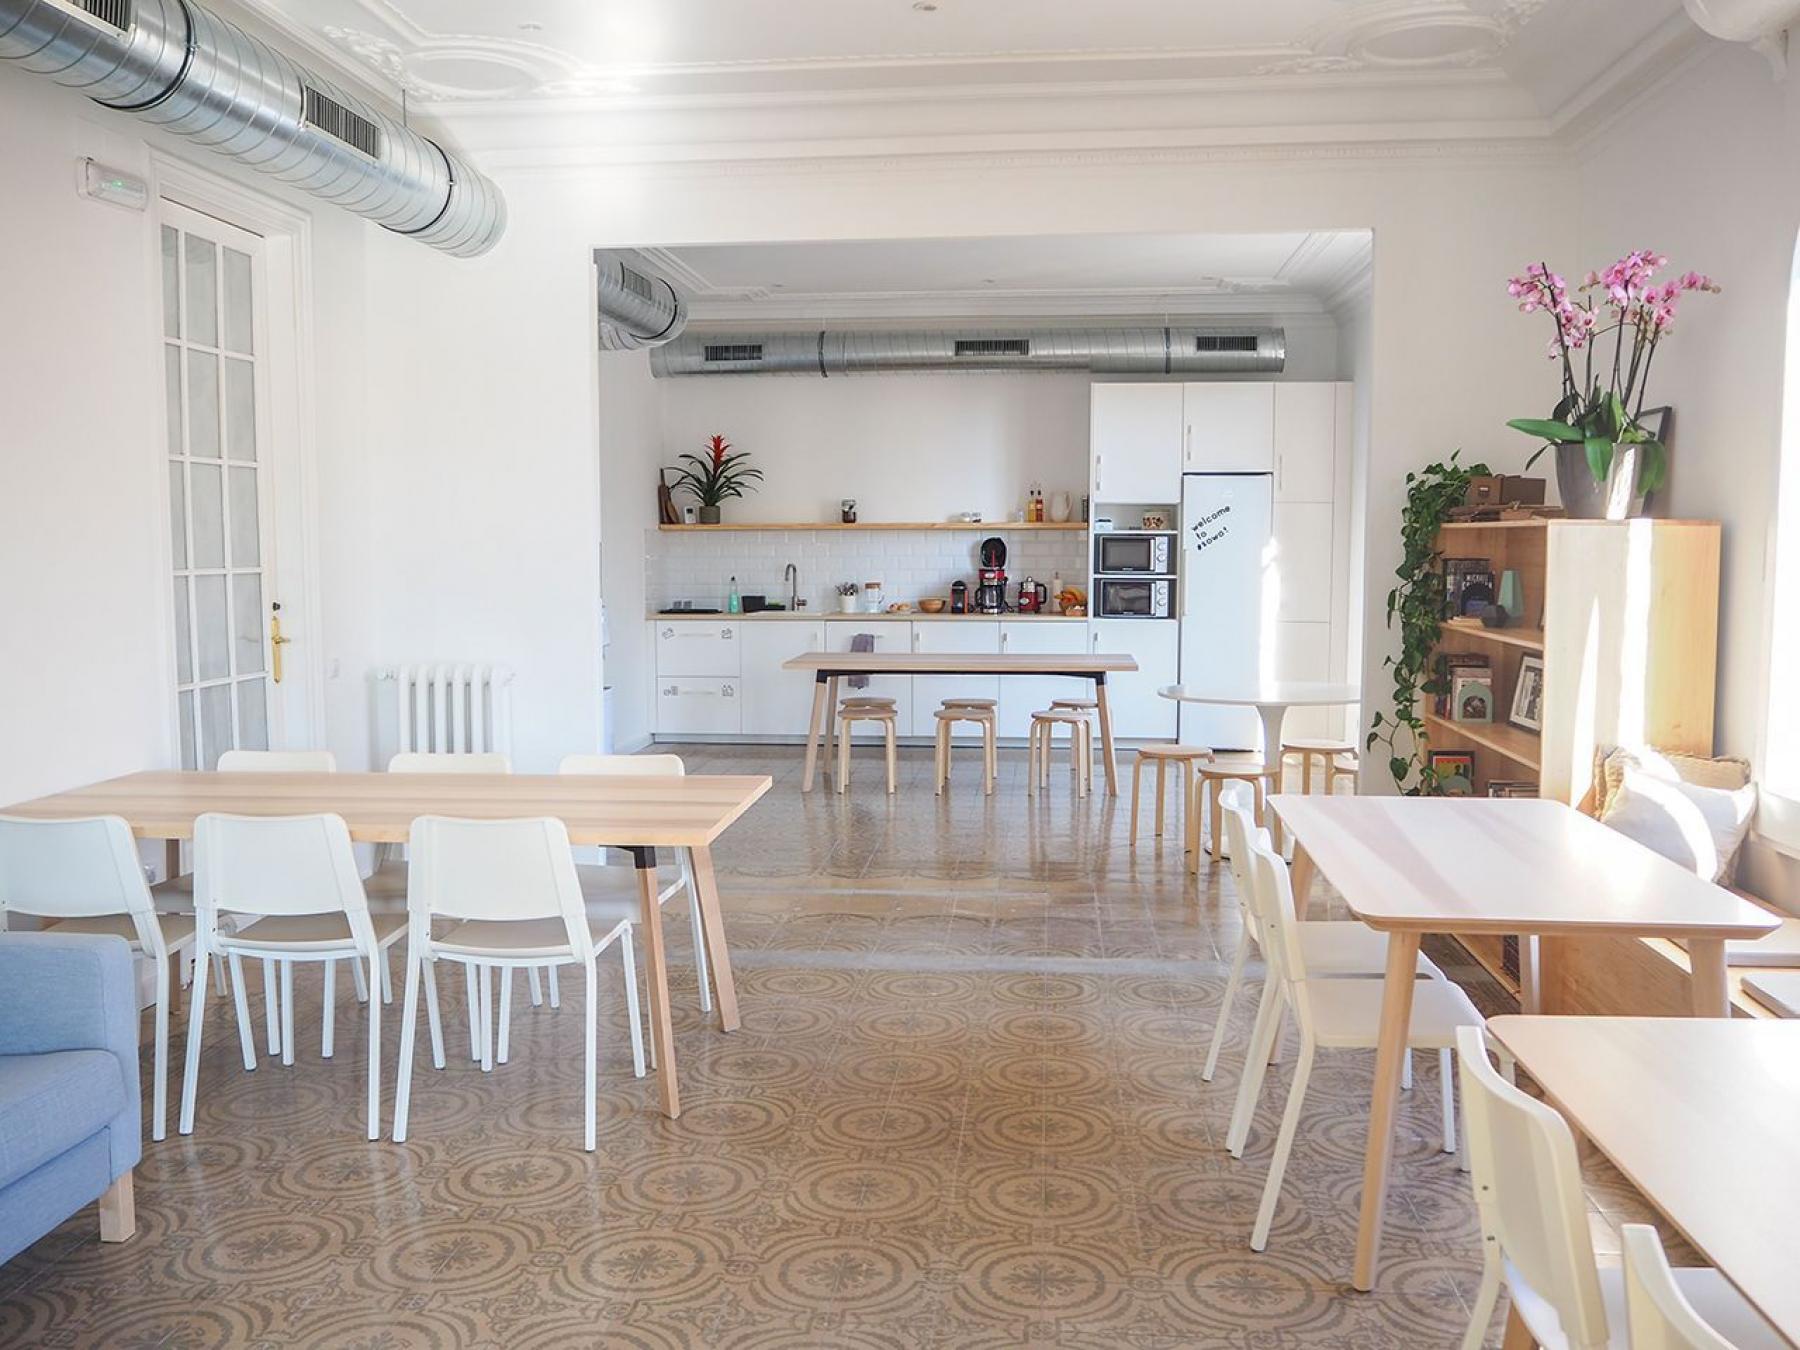 Rent office space Carrer del Consell de Cent 413, Barcelona (19)